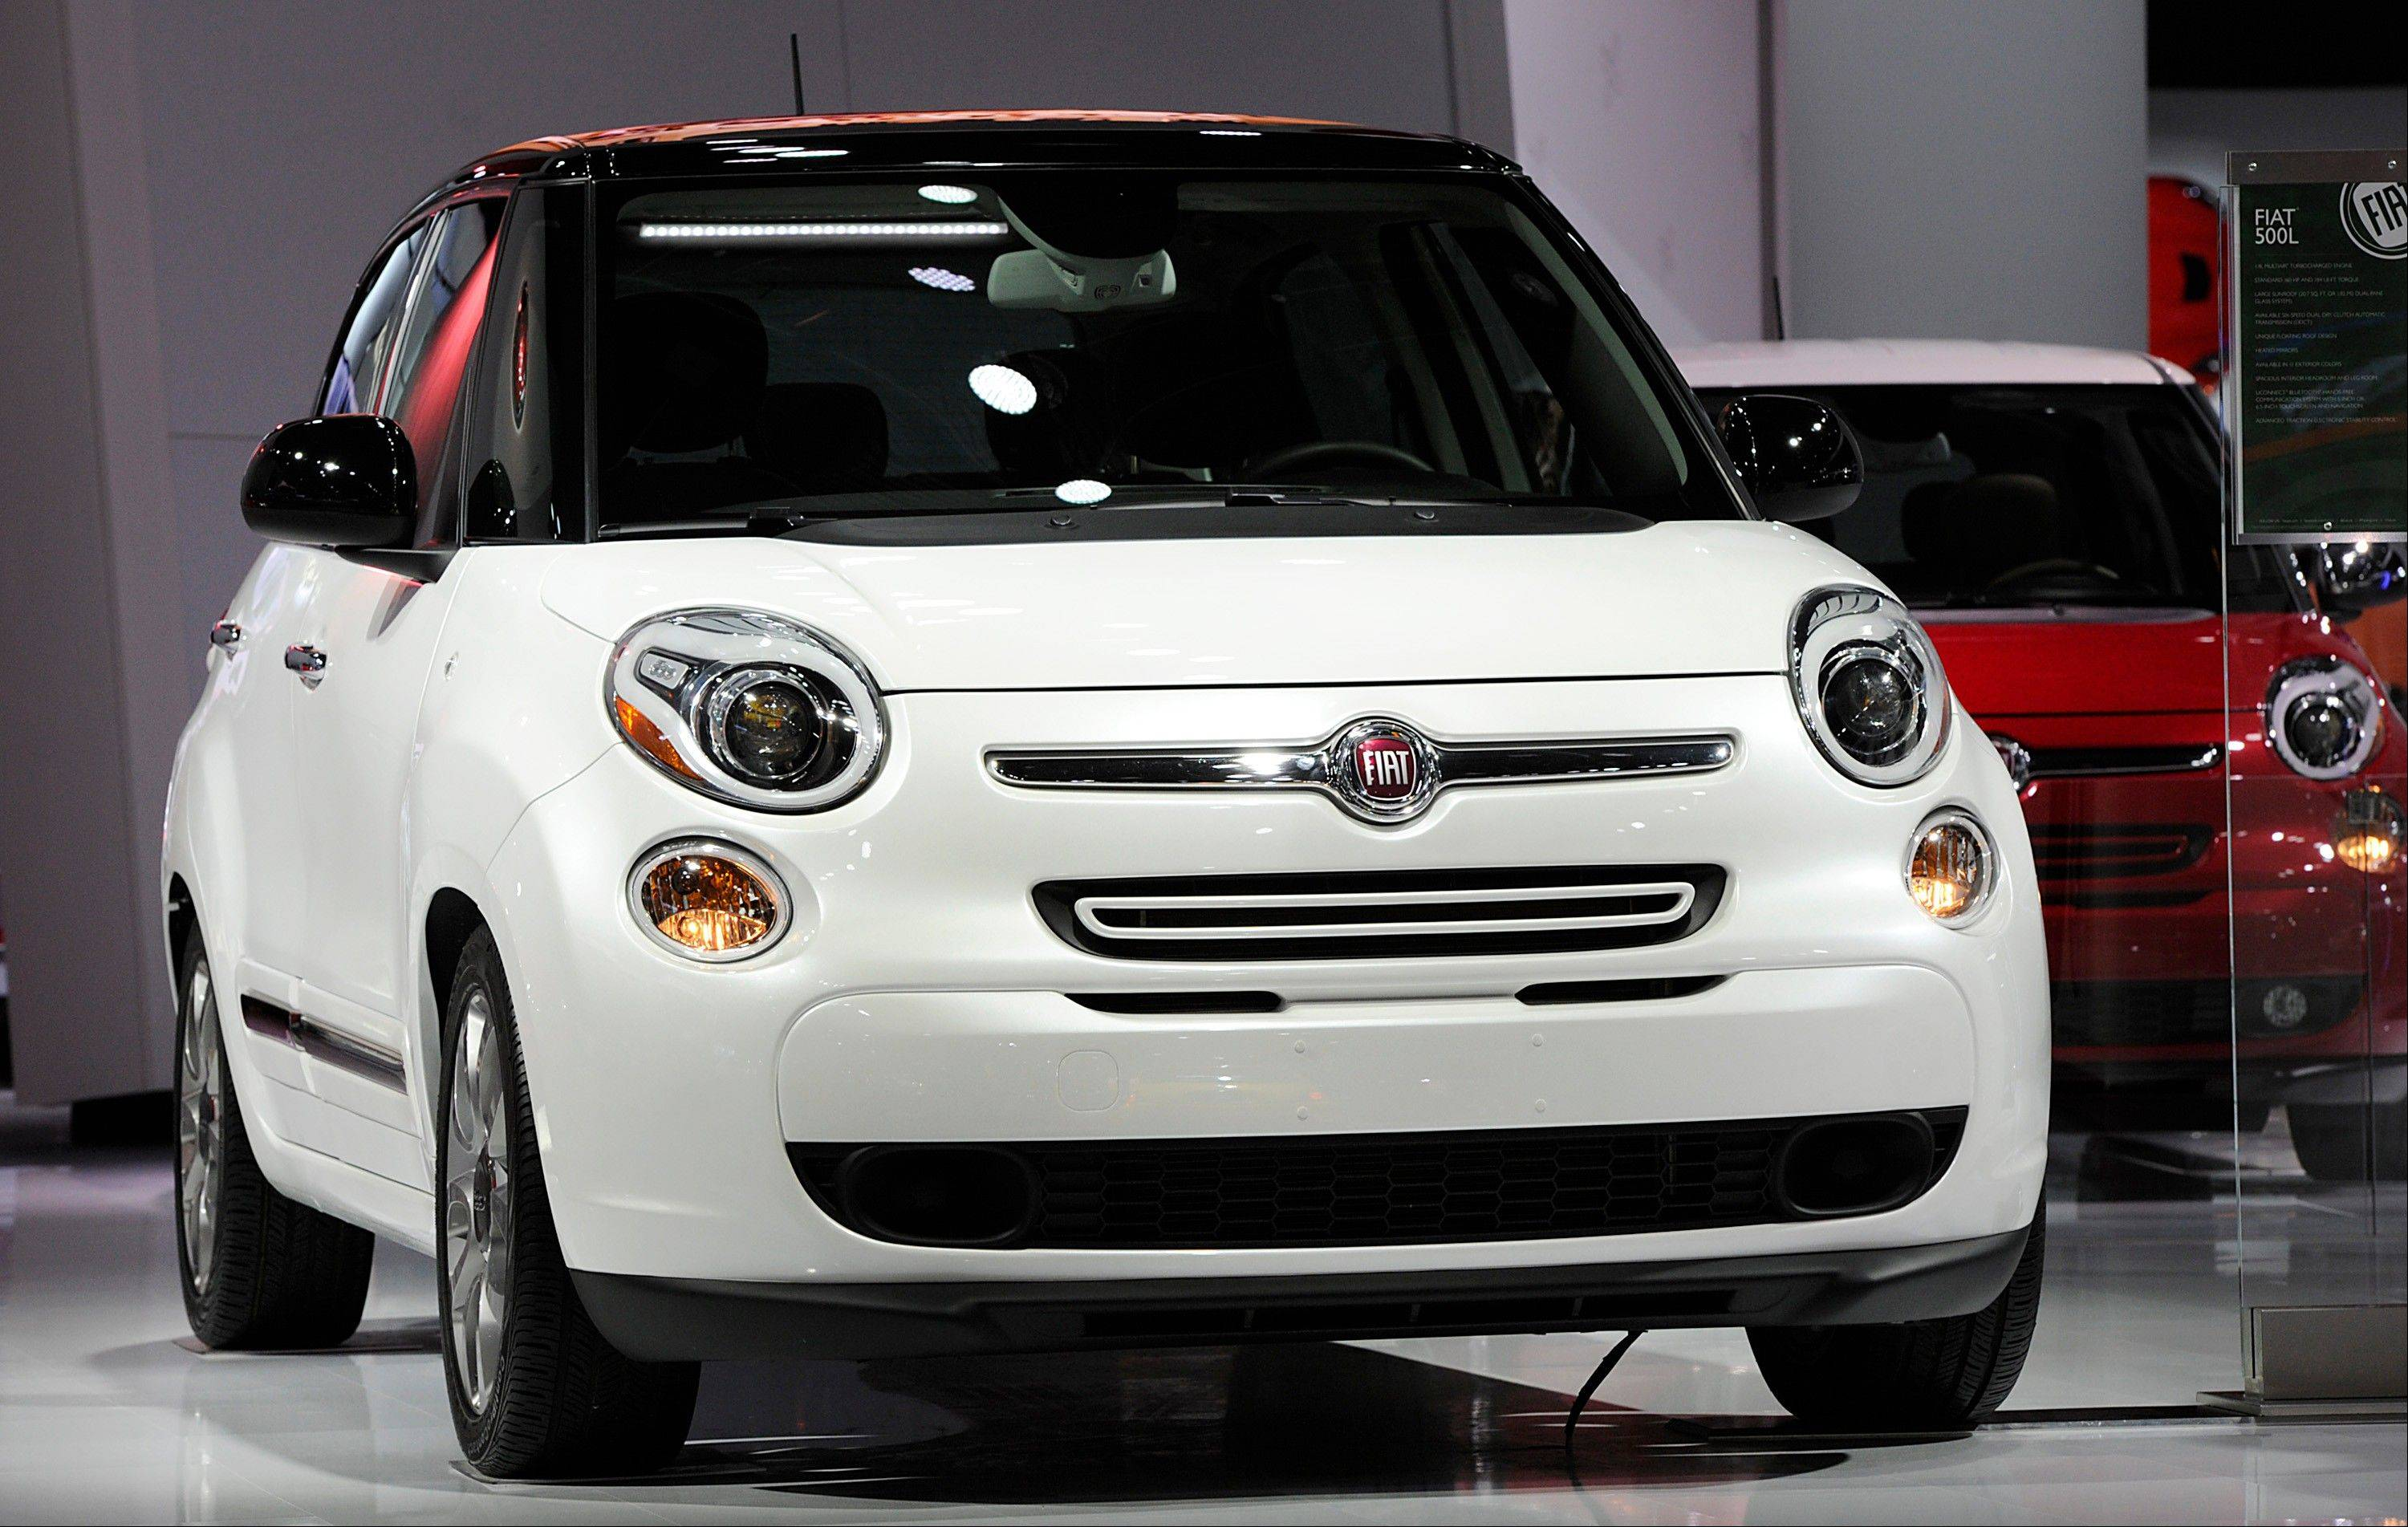 The Fiat SpA Abarth vehicle is displayed during the 2013 North American International Auto Show (NAIAS) in Detroit, Michigan, U.S., on Tuesday, Jan. 15, 2013. The Detroit auto show runs through Jan. 27 and will display over 500 vehicles, representing the most innovative designs in the world.